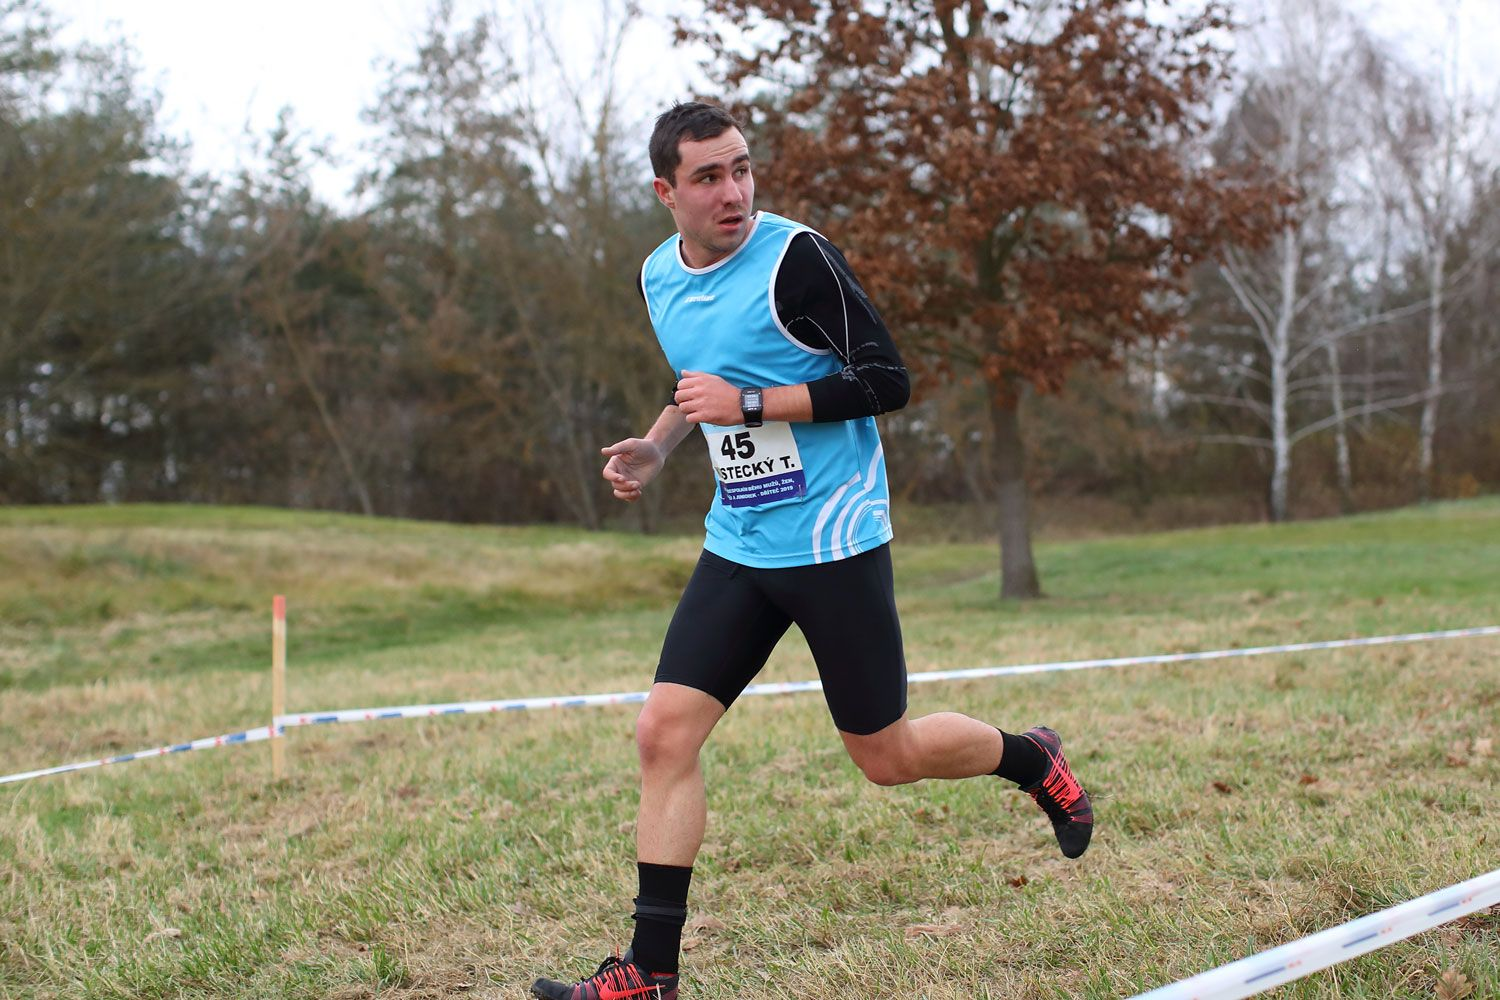 CZ Championship Cross Country Dritec 13